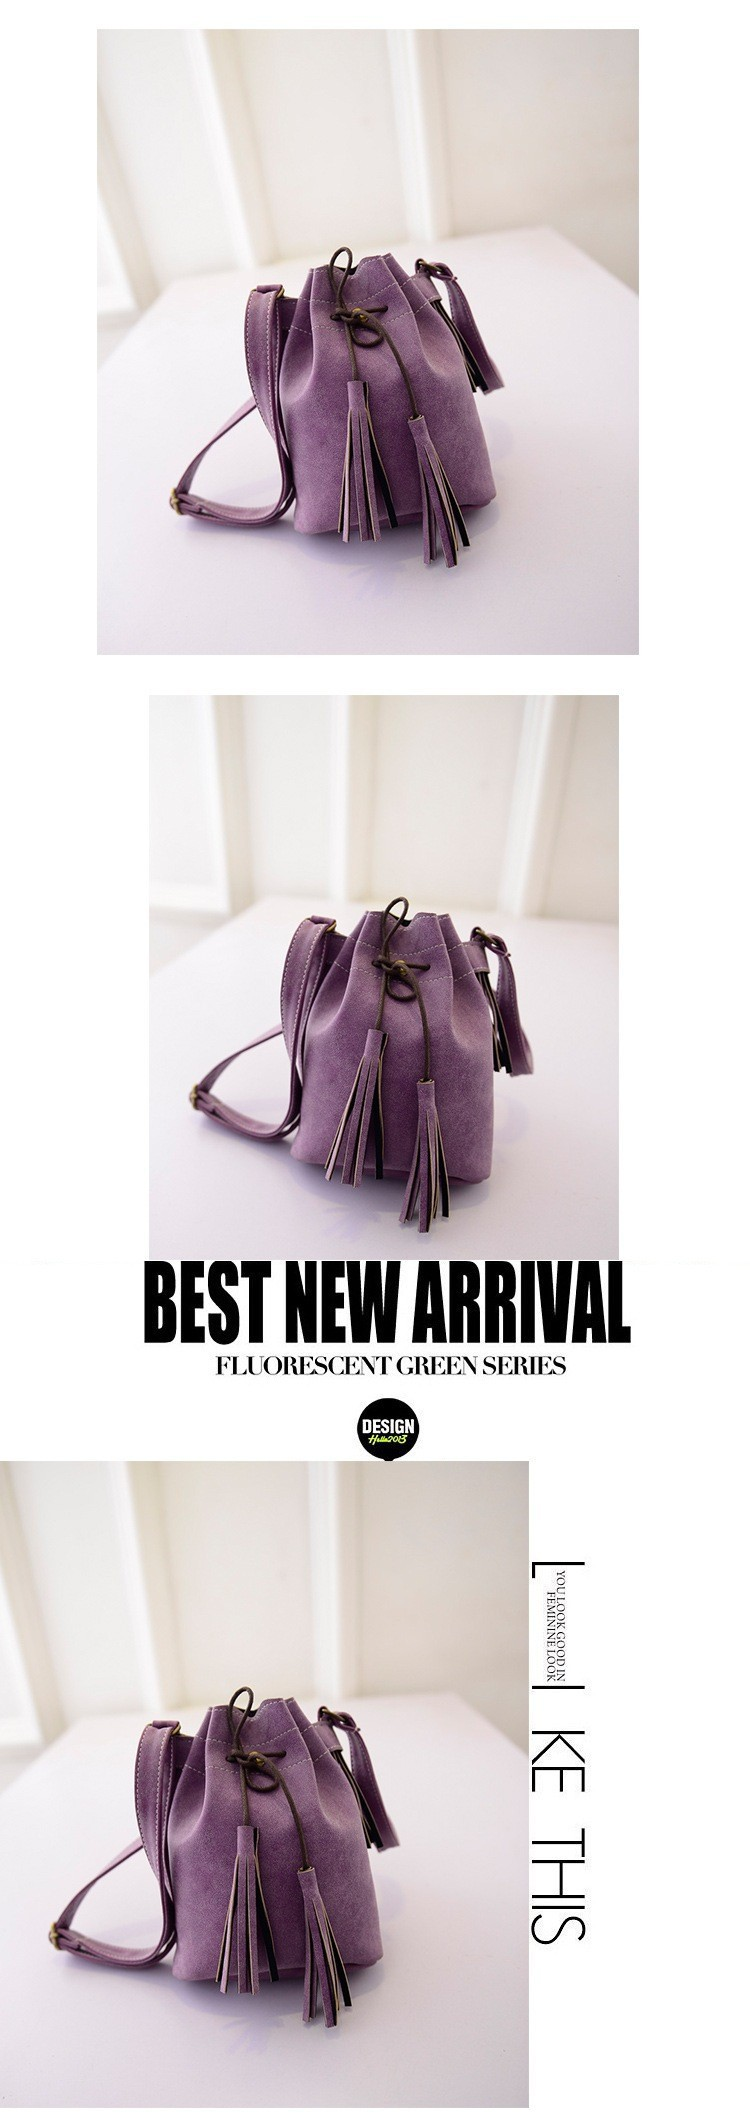 Vintage Bucket Women Shoulder bags Fashion Tassel bags Small Women messenger bags Spring Handbags Tote bolsas femininas BH237 (2)